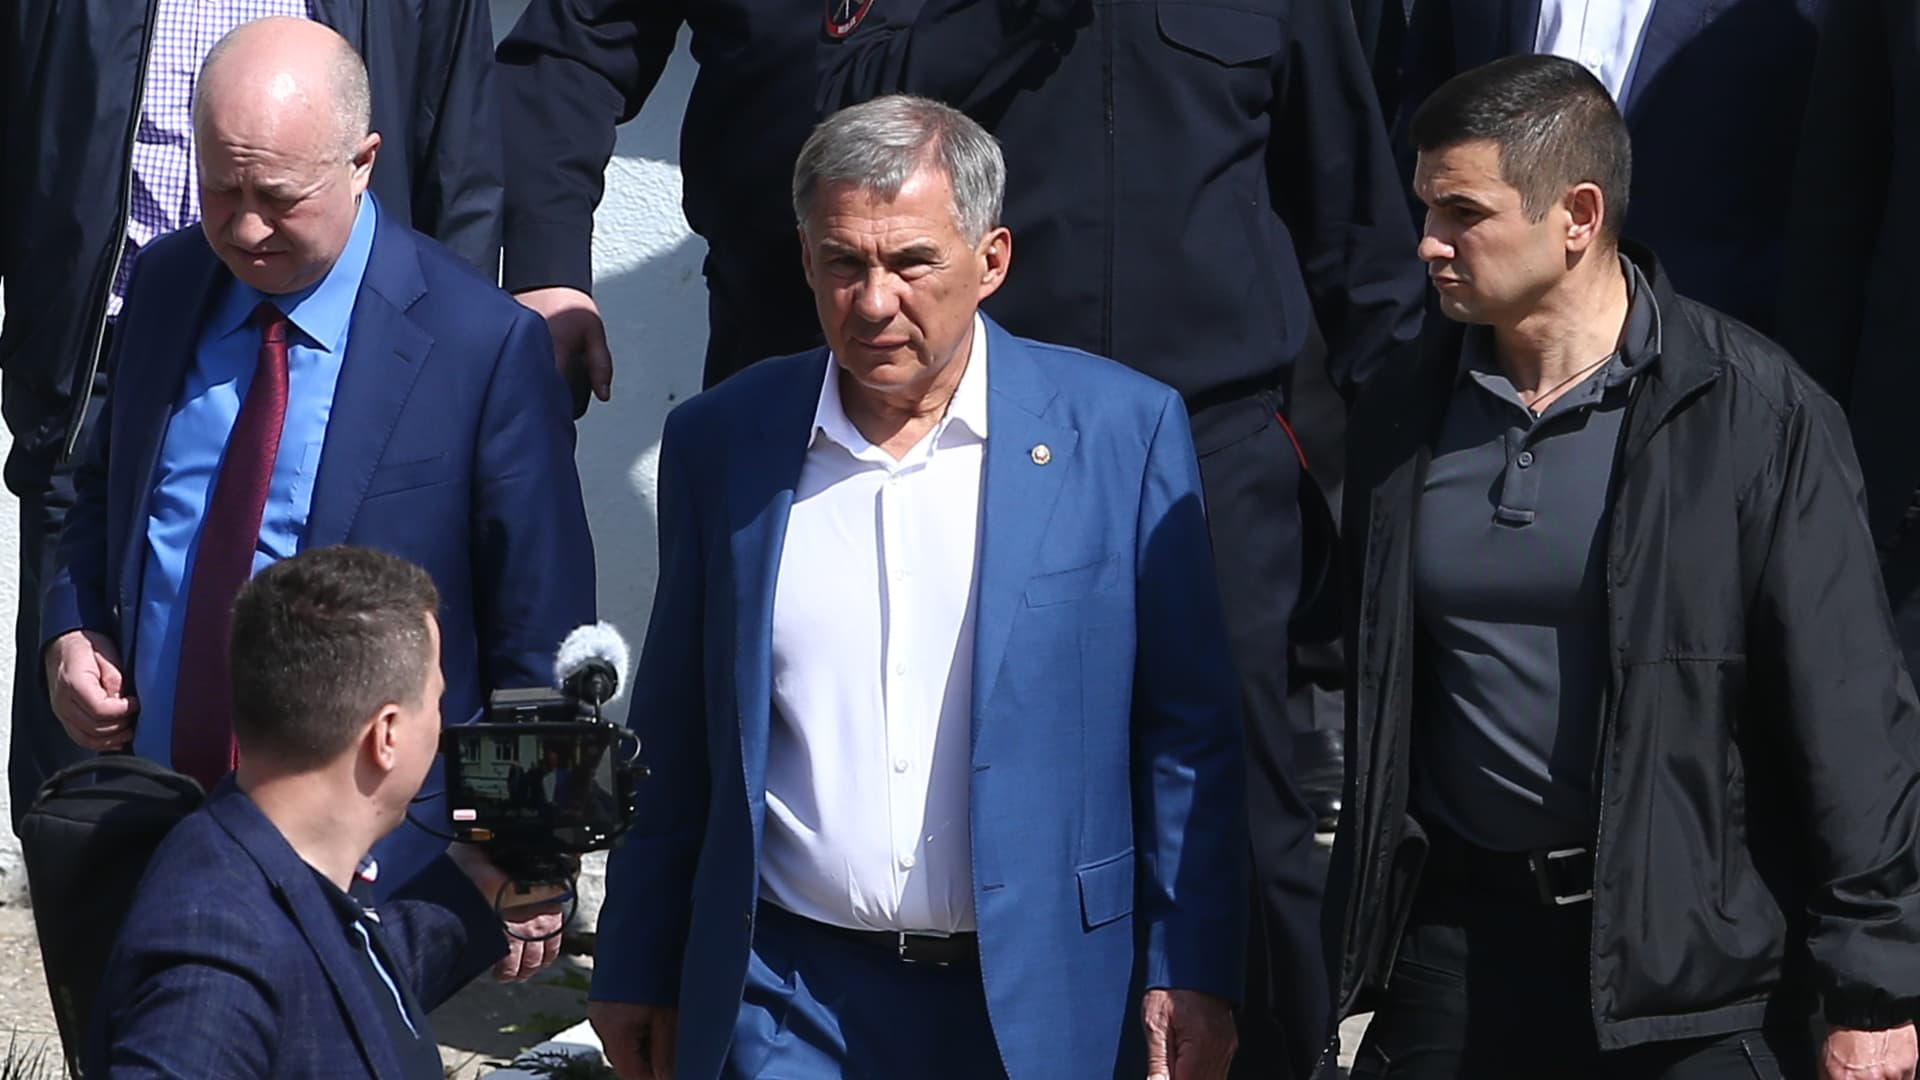 Rustam Minnikhanov, president of the Republic of Tatarstan, arrives at school No 175 where a shooting ha taken place; the number of dead is uncertain.